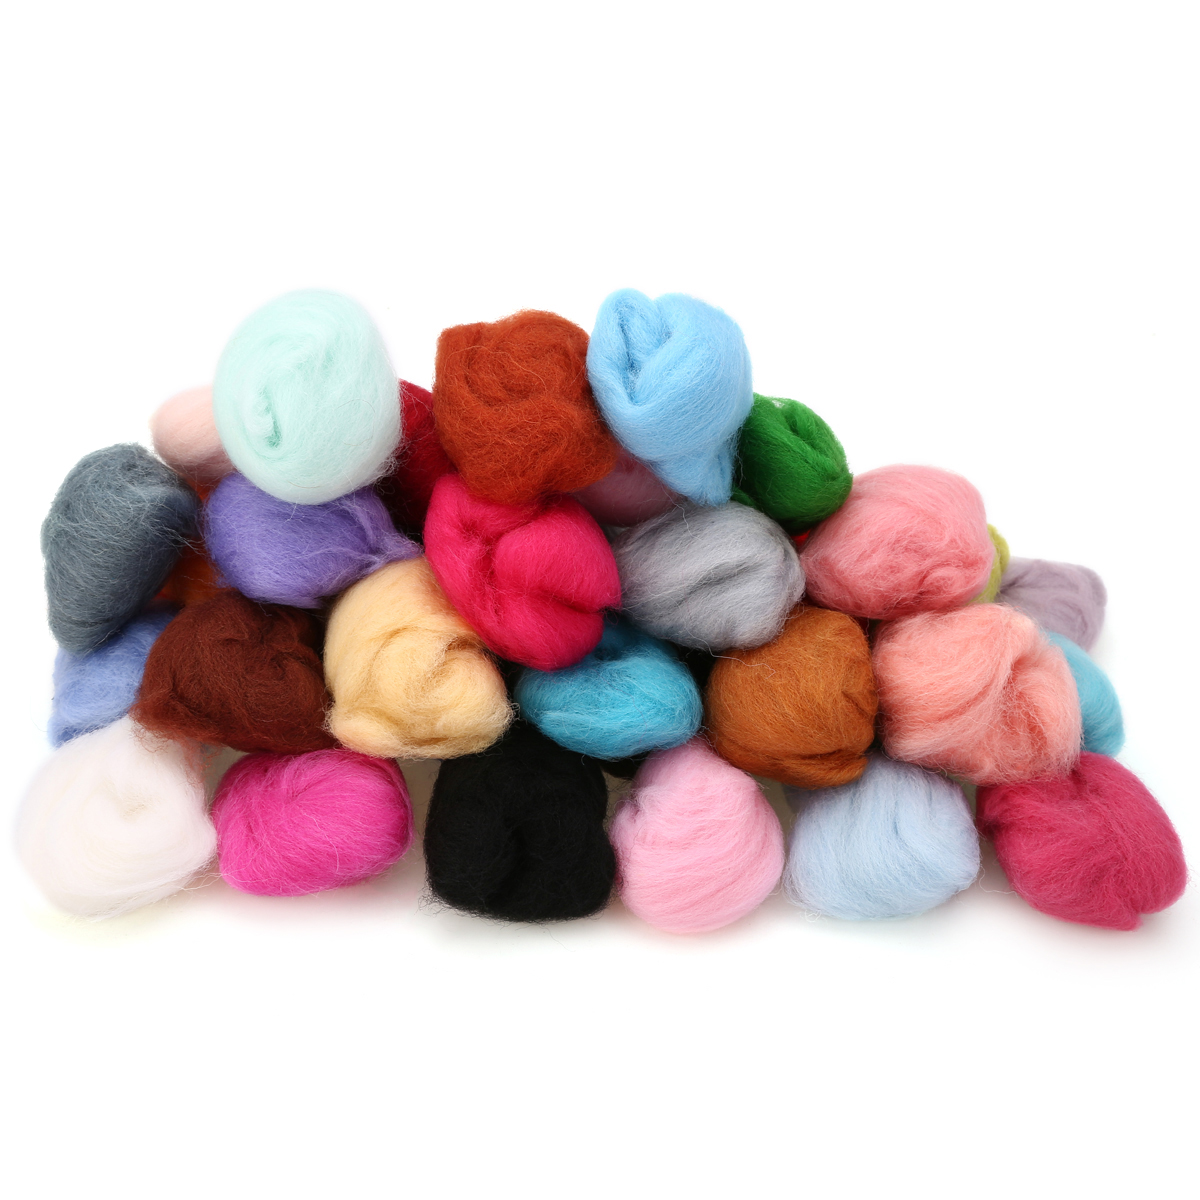 40 Colors 5g/bag Merino Wool Tops Felting Fibre For Needle Felting Wet Felting DIY Fun Doll Needlework Raw Wool Felt